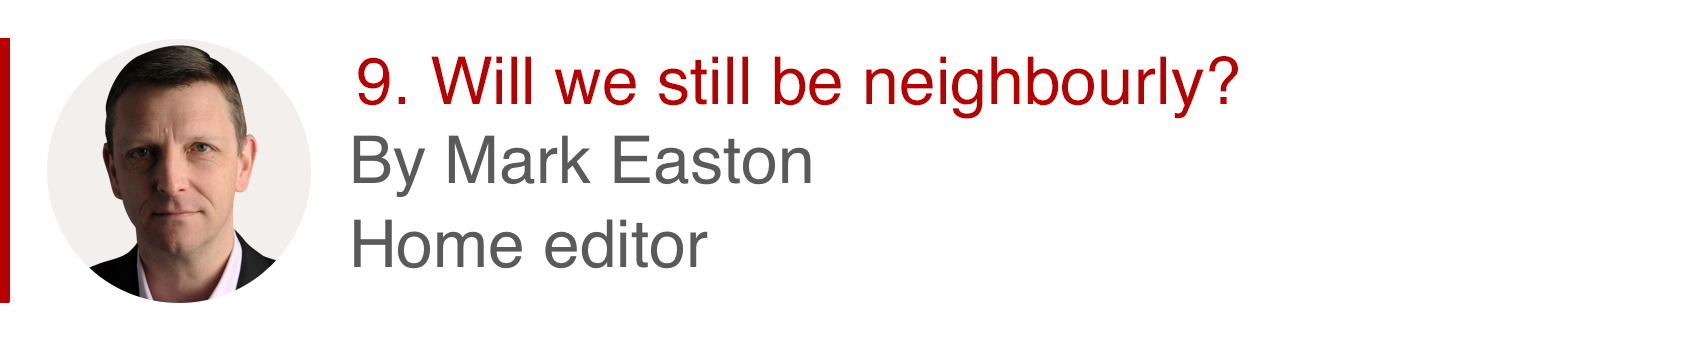 9. Will we still be neighbourly? By Mark Easton, Home editor